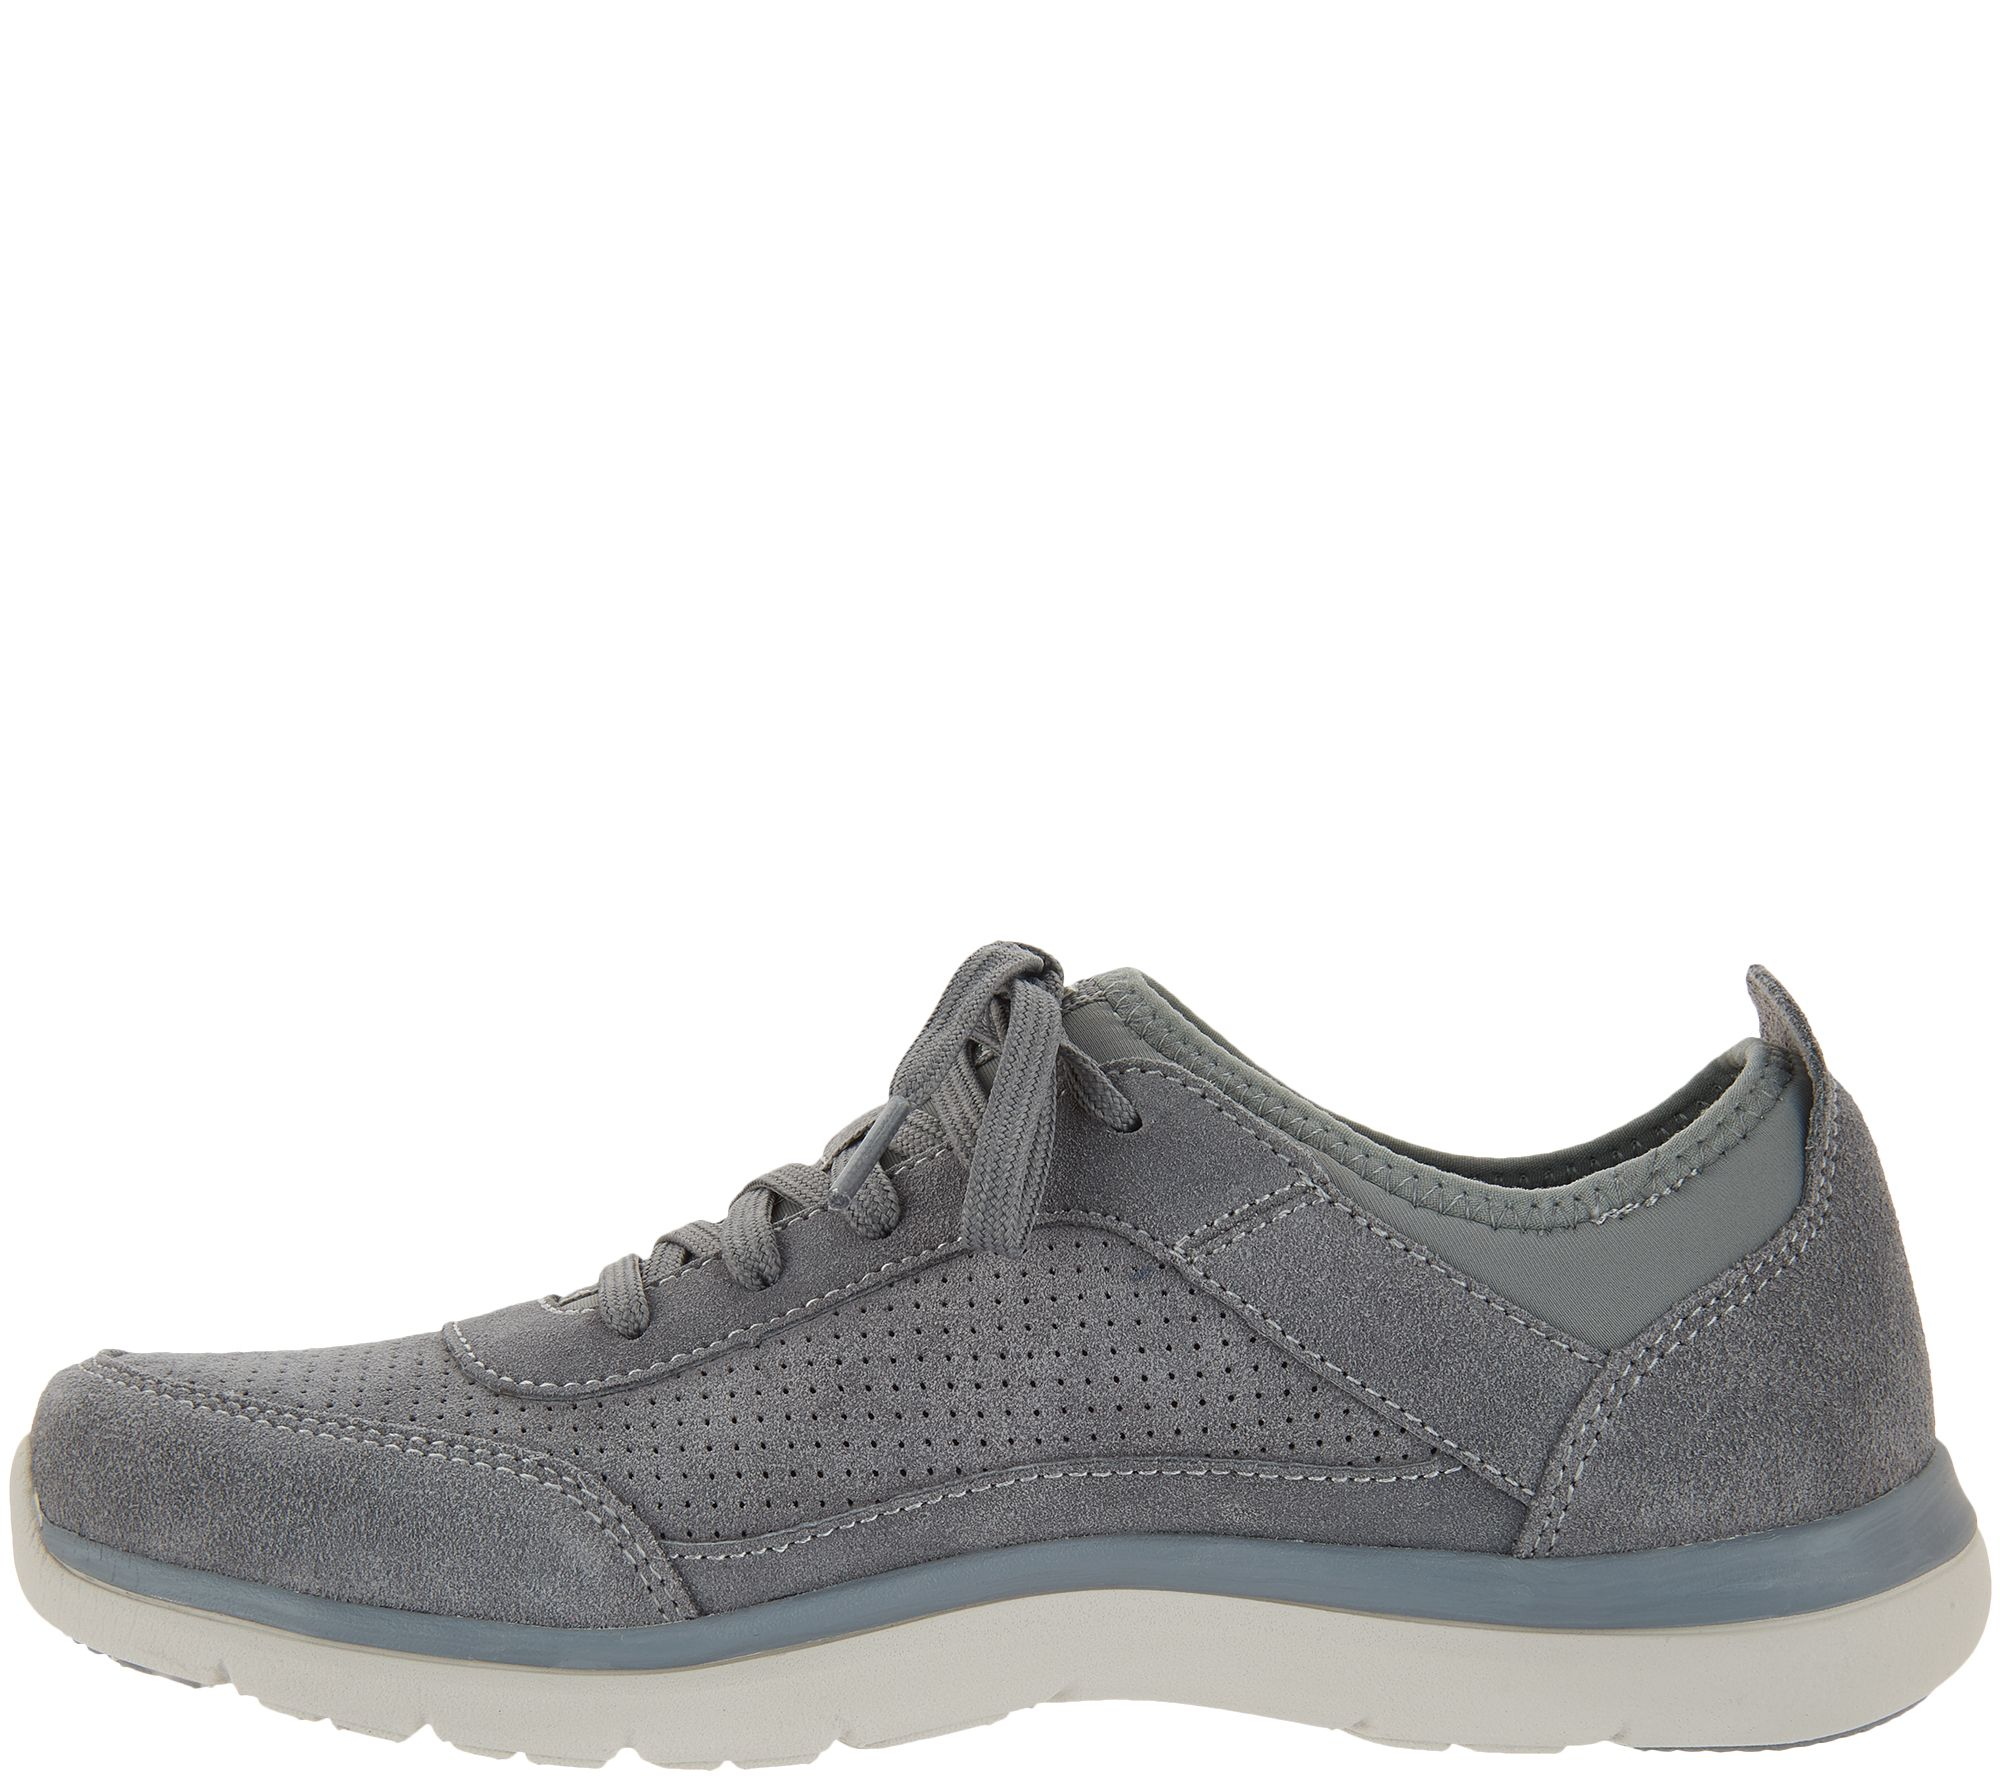 219b367208a5d Ryka Perforated Suede Lace-Up Shoes - Elle - Page 1 — QVC.com